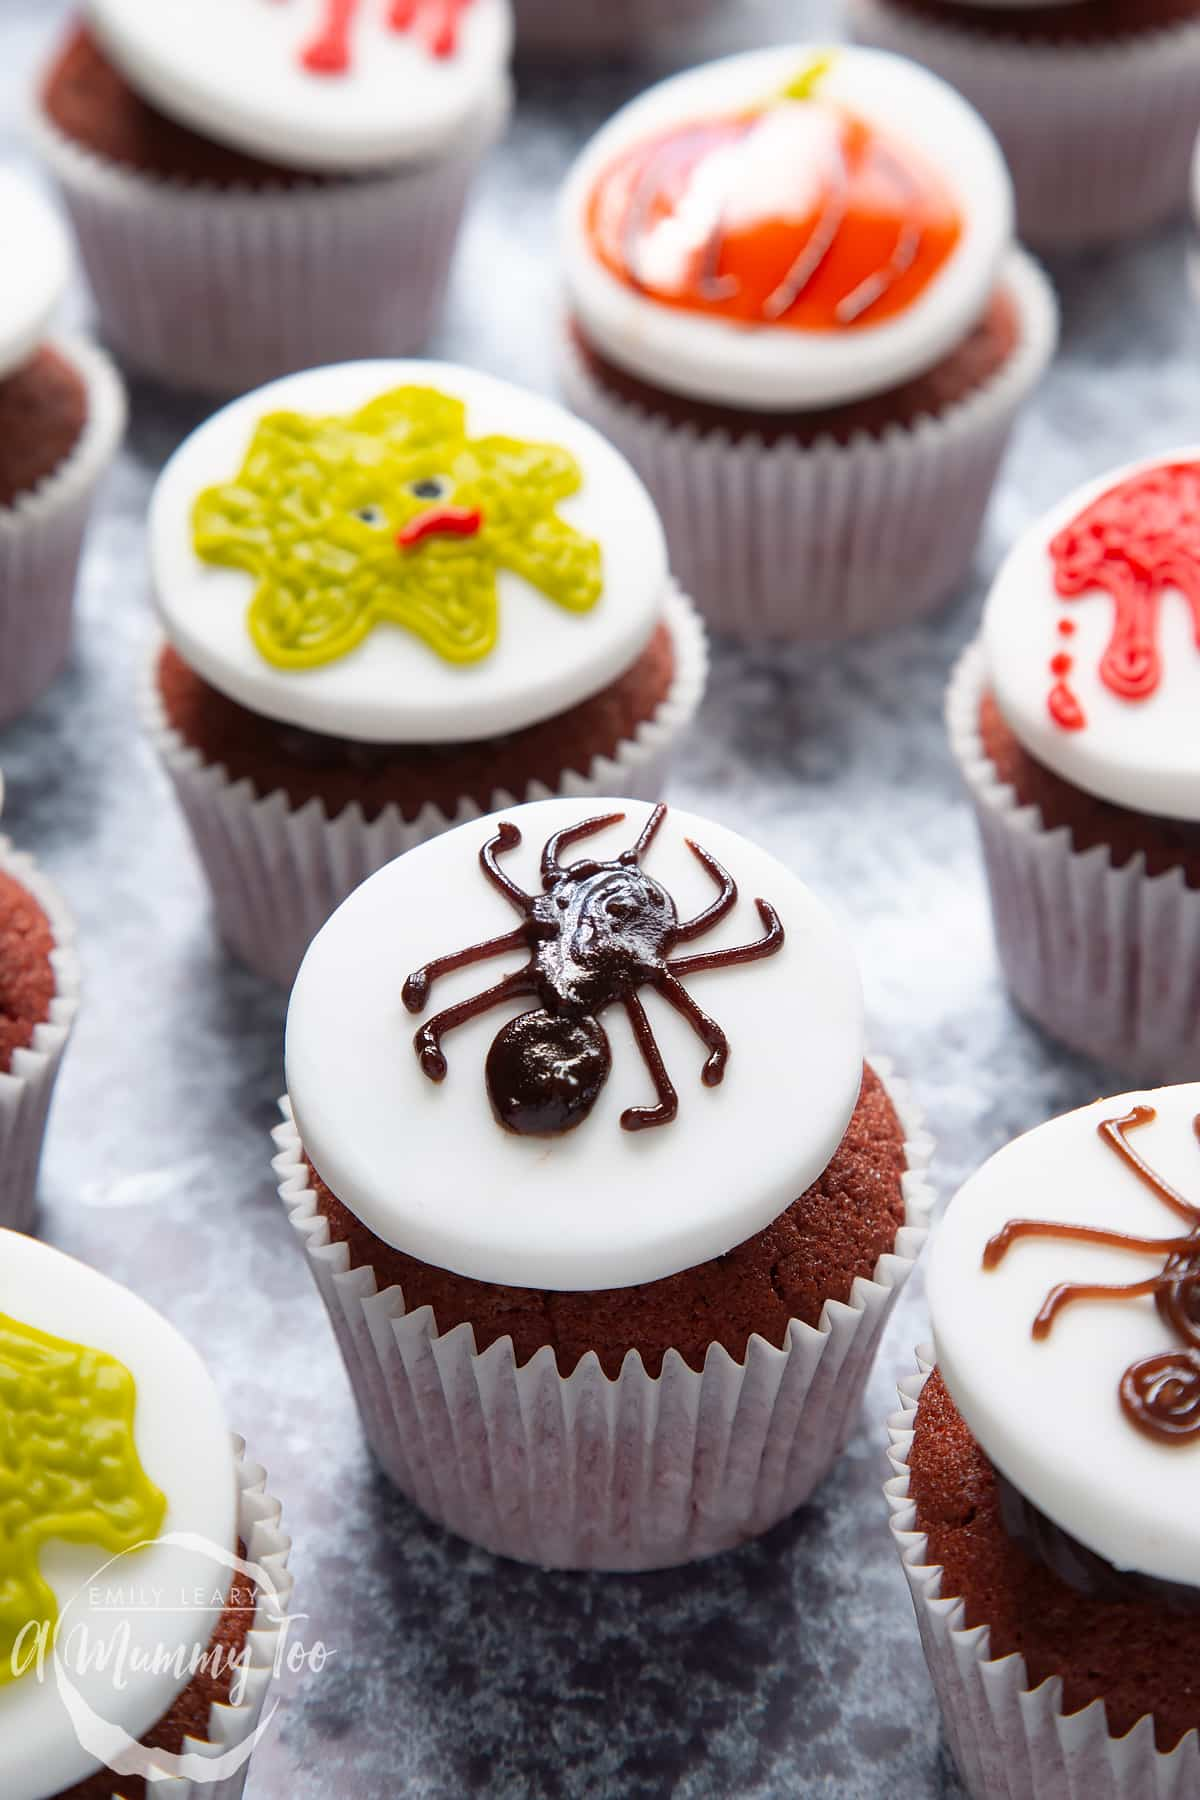 Dairy free Halloween cupcakes: red velvet cupcakes topped with chocolate frosting and white fondant discs decorated with icing pens. The cupcake in the foreground has a spider design.